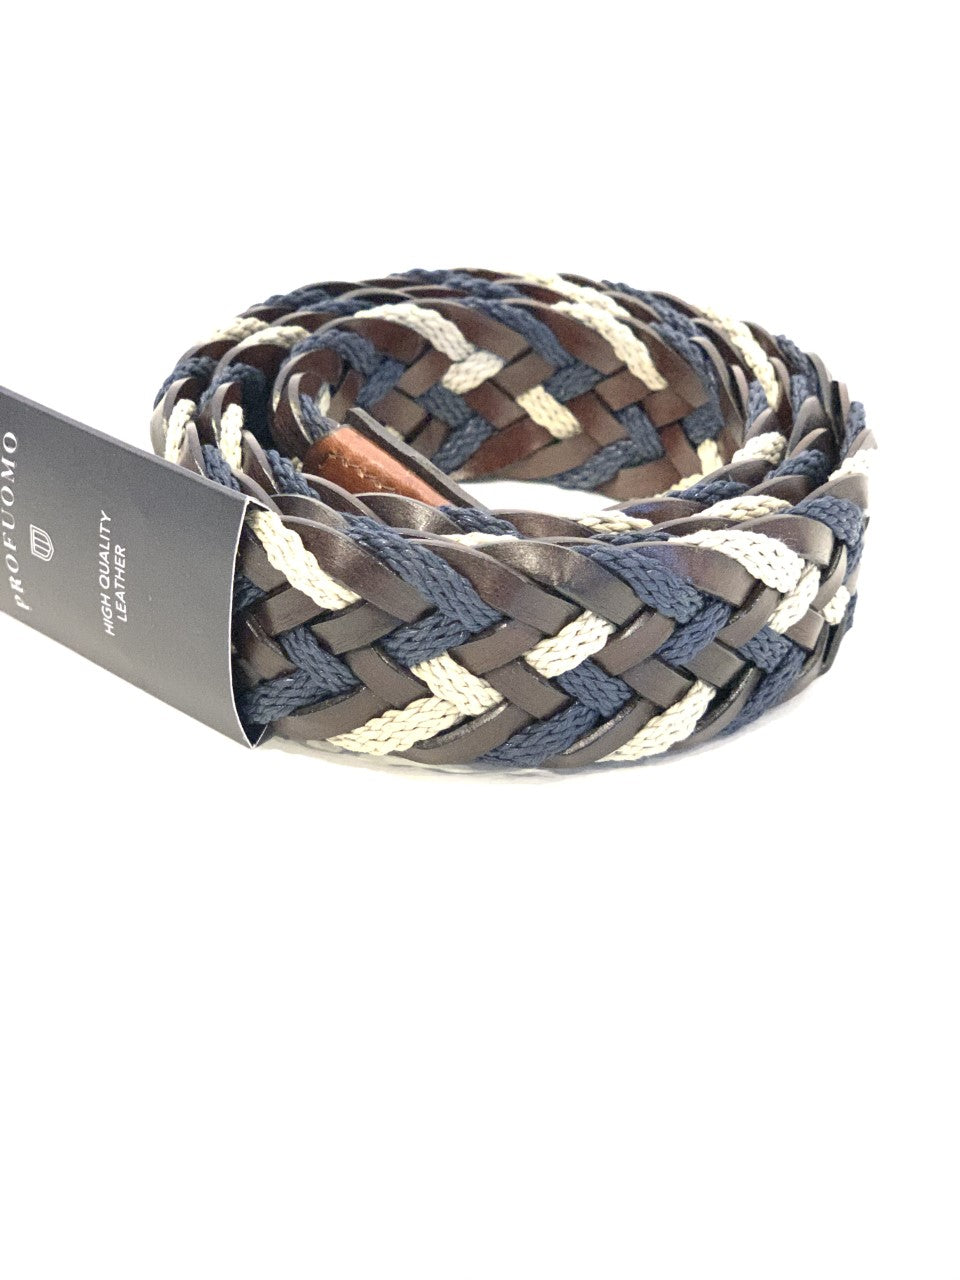 Profuomo - Leather/Cotton Braided Belt - Brown & Blue